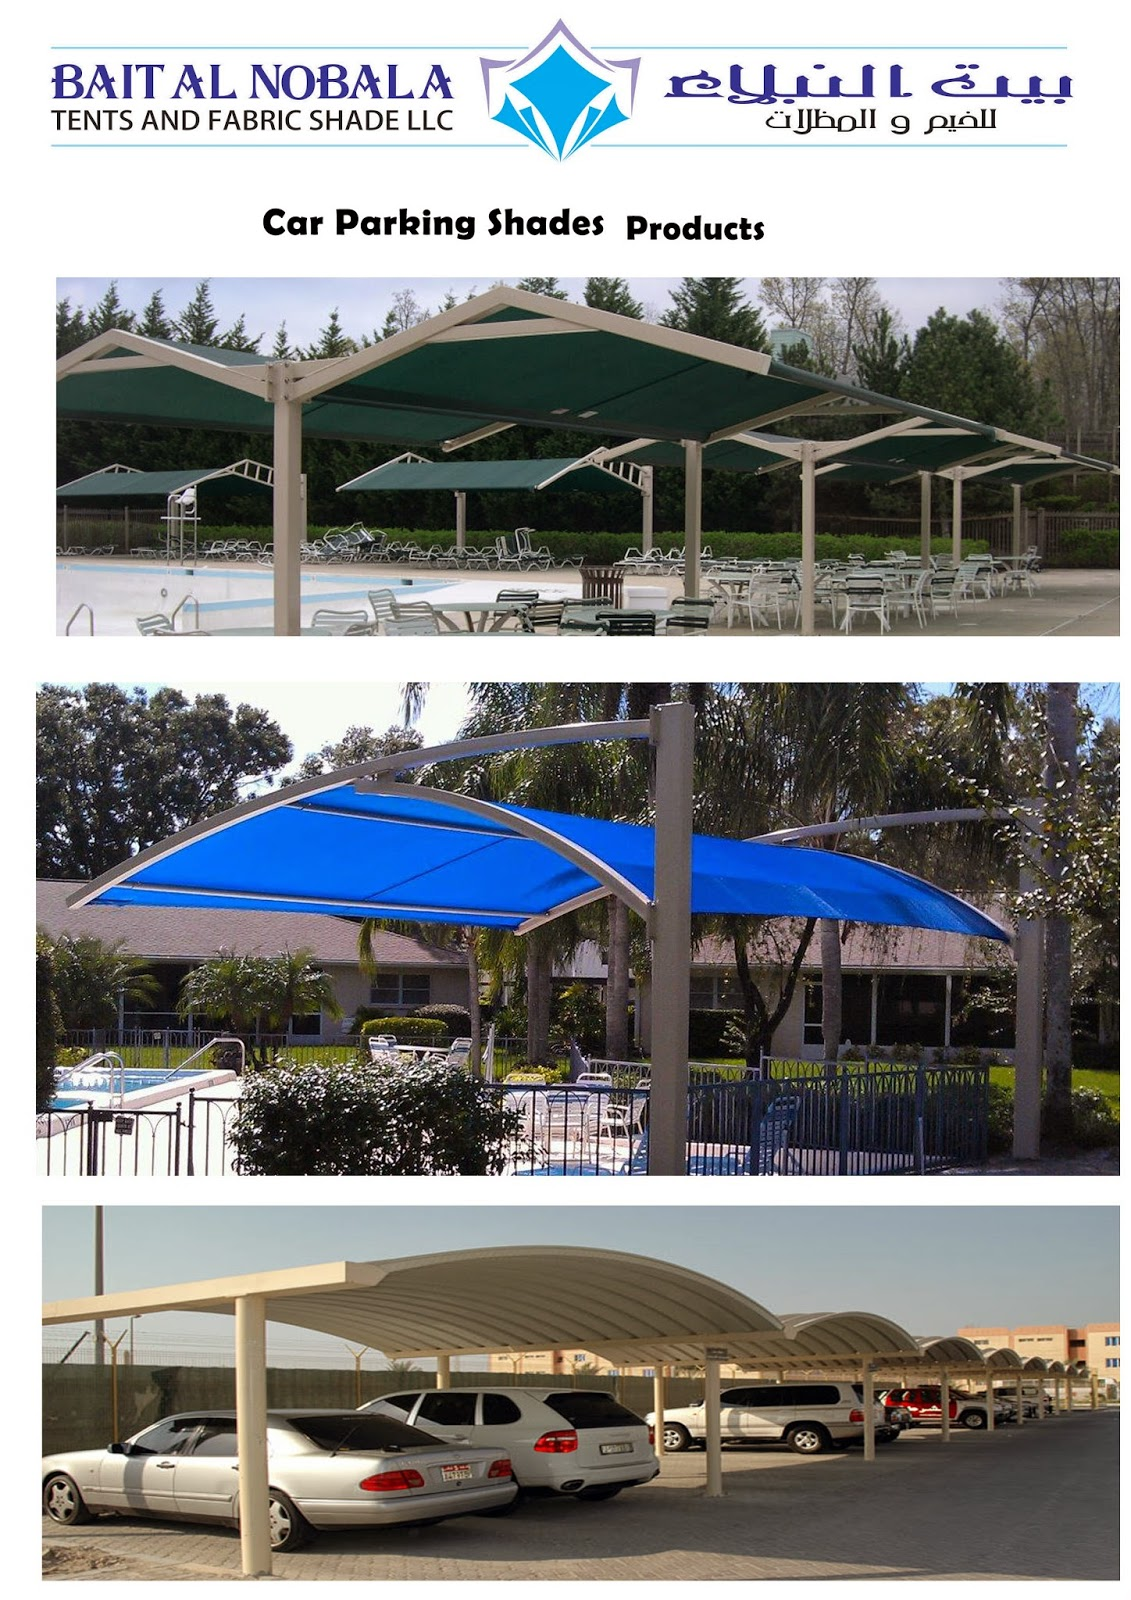 mohali ludhiana tensile panchkula car sheds manufacturer shed b structure parking chandigarh in